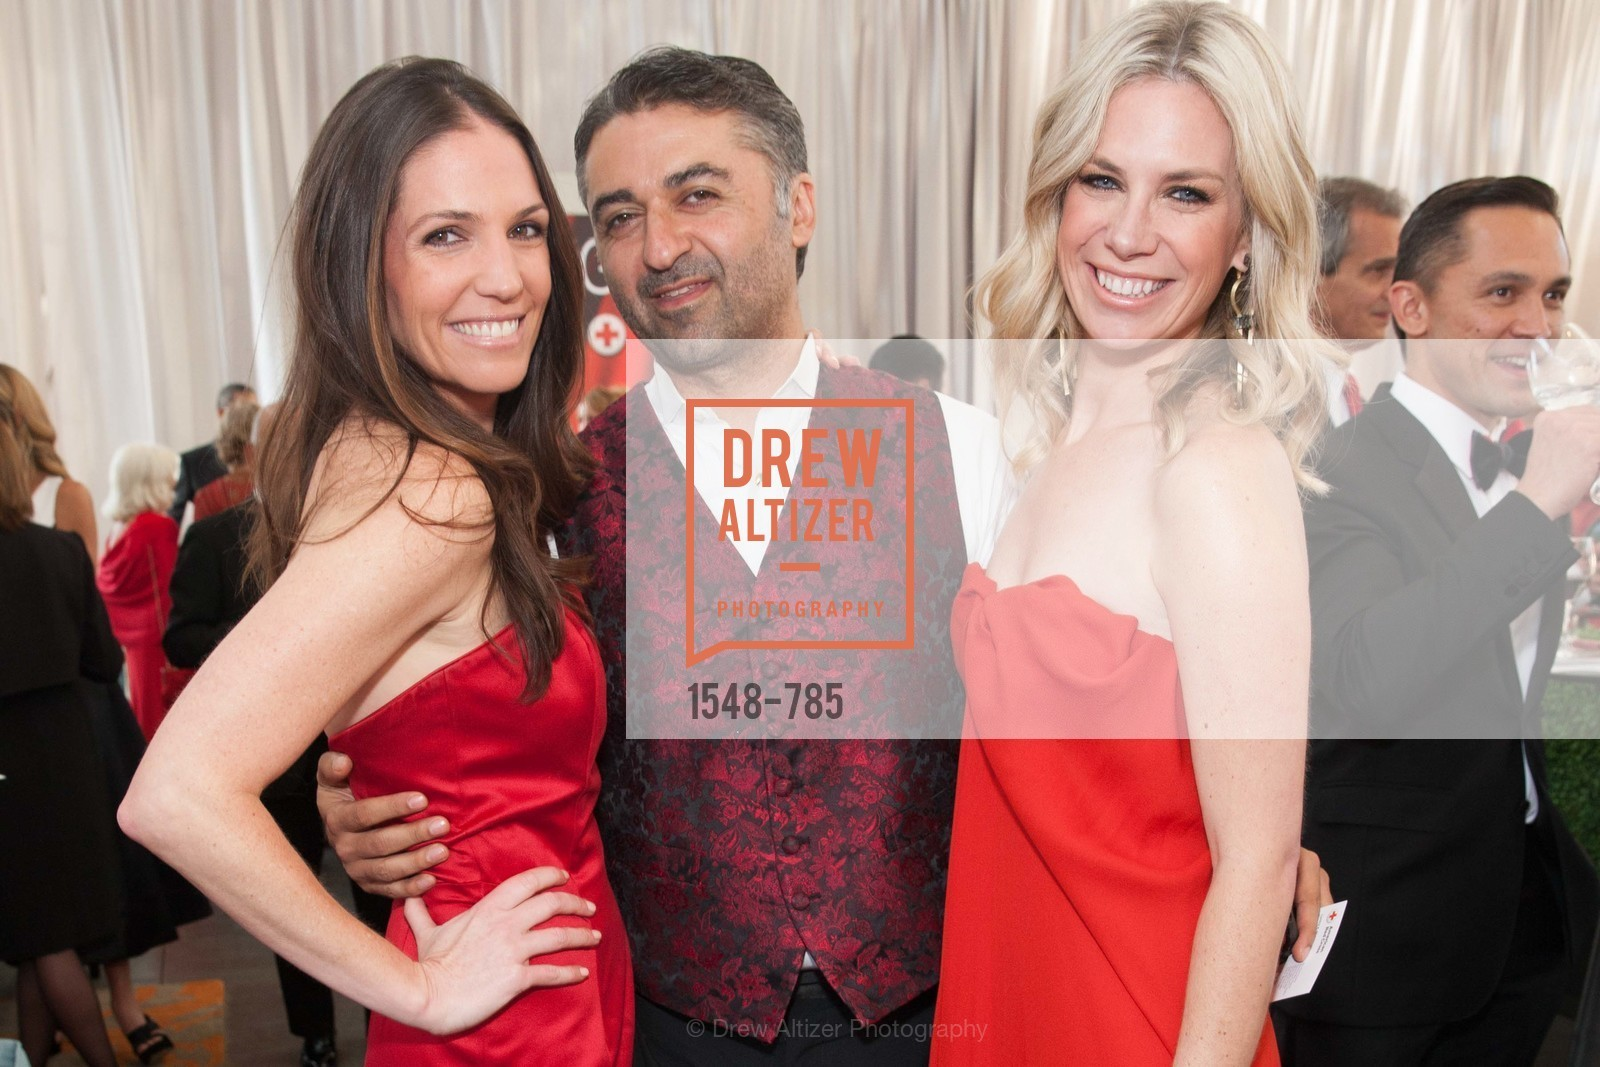 Susie Hall, Hooman Khalili, Colby Hallen, 2015 RED CROSS Gala, US, April 11th, 2015,Drew Altizer, Drew Altizer Photography, full-service agency, private events, San Francisco photographer, photographer california